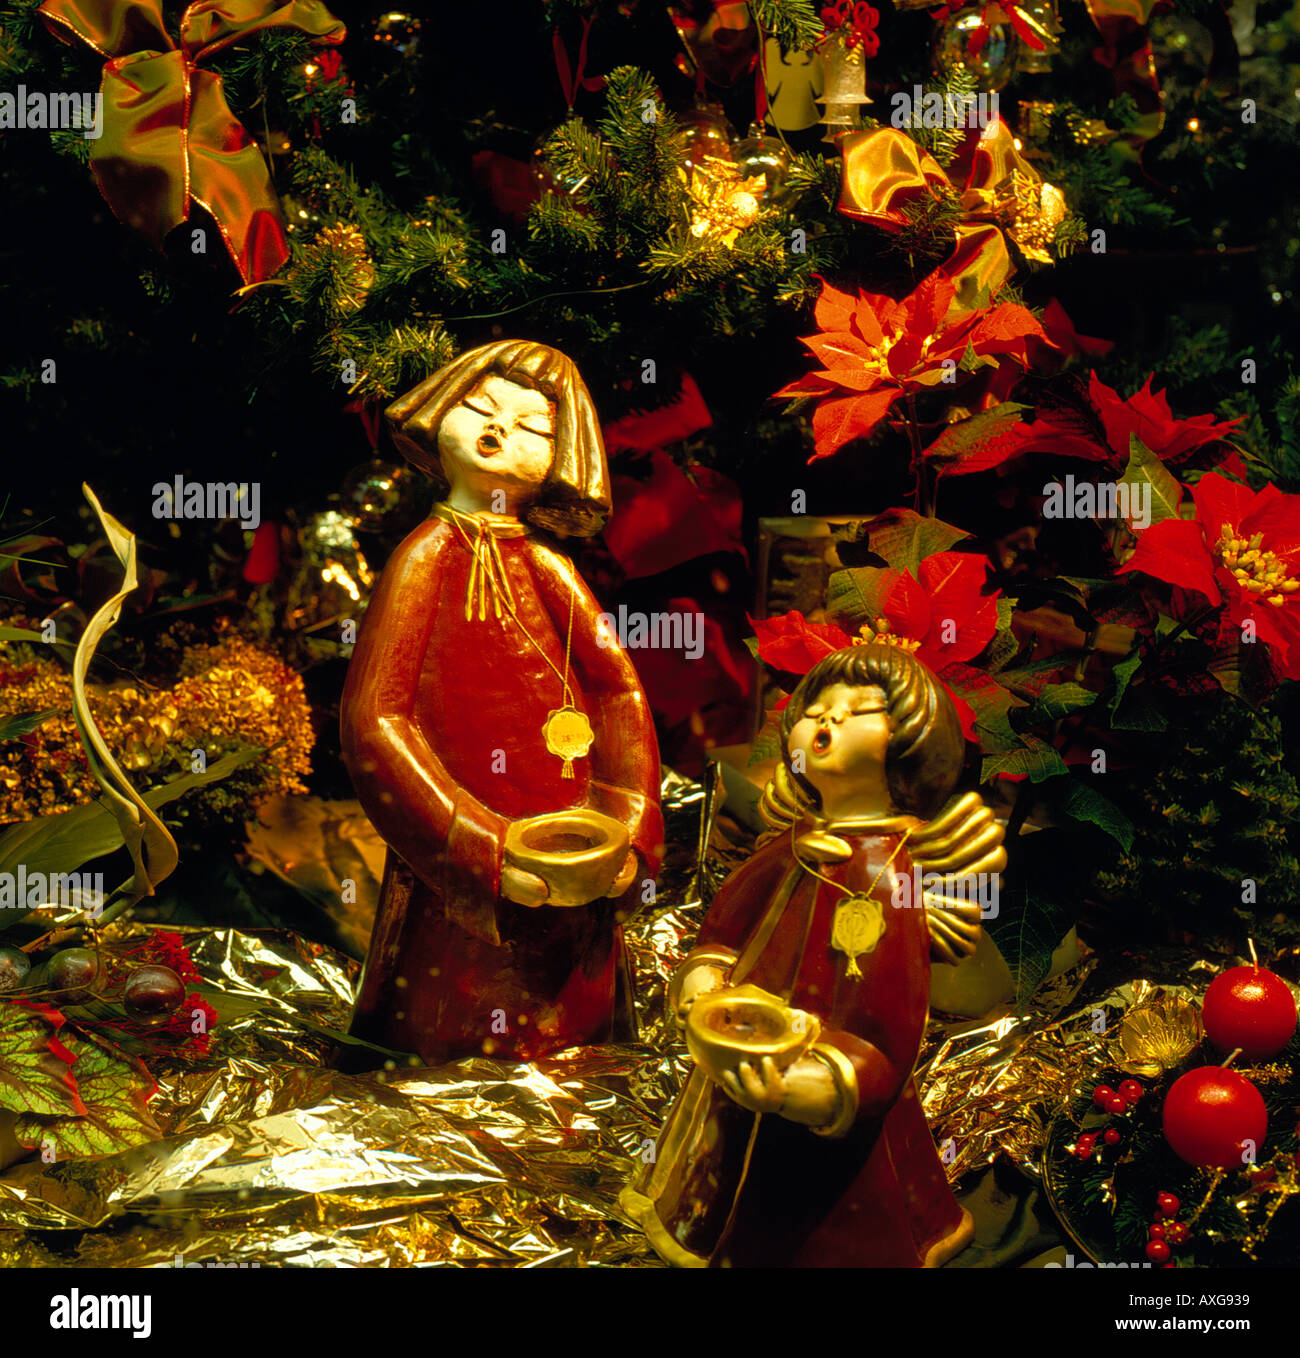 Christmas decoration. Photo by Willy Matheisl - Stock Image